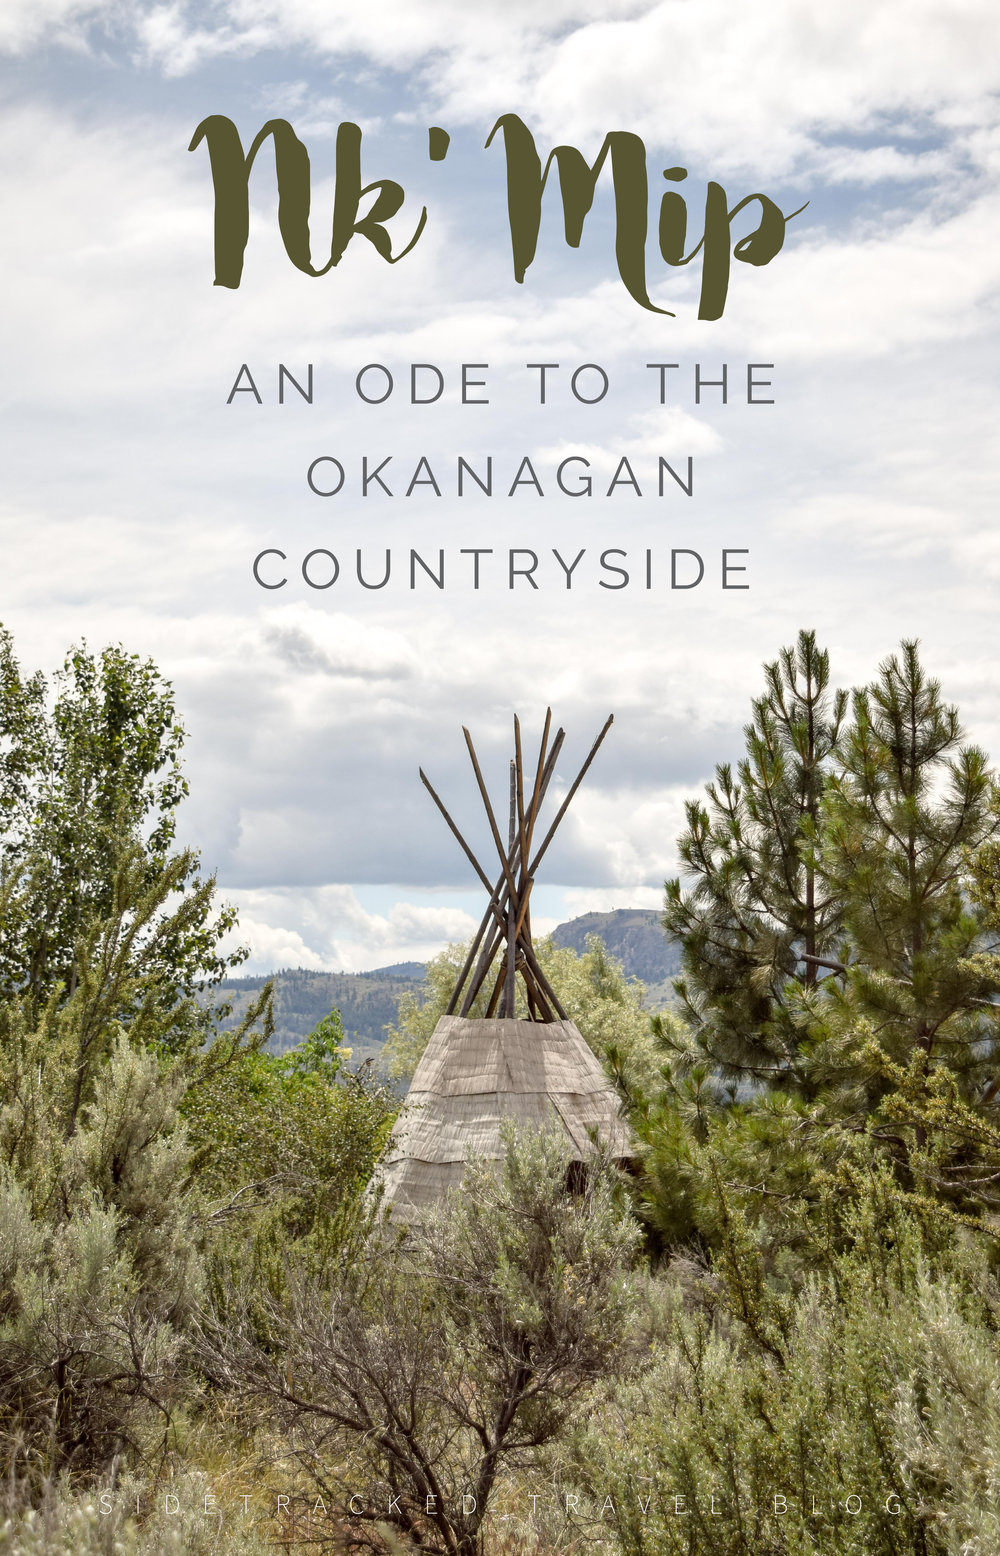 Whether you long to relax with a glass of local wine or live for history and culture, if you're traveling through the Okanagan Valley you simply need to stop at Nk'Mip. Find more on how to spend your days, where to stay, and other useful information in this guide.